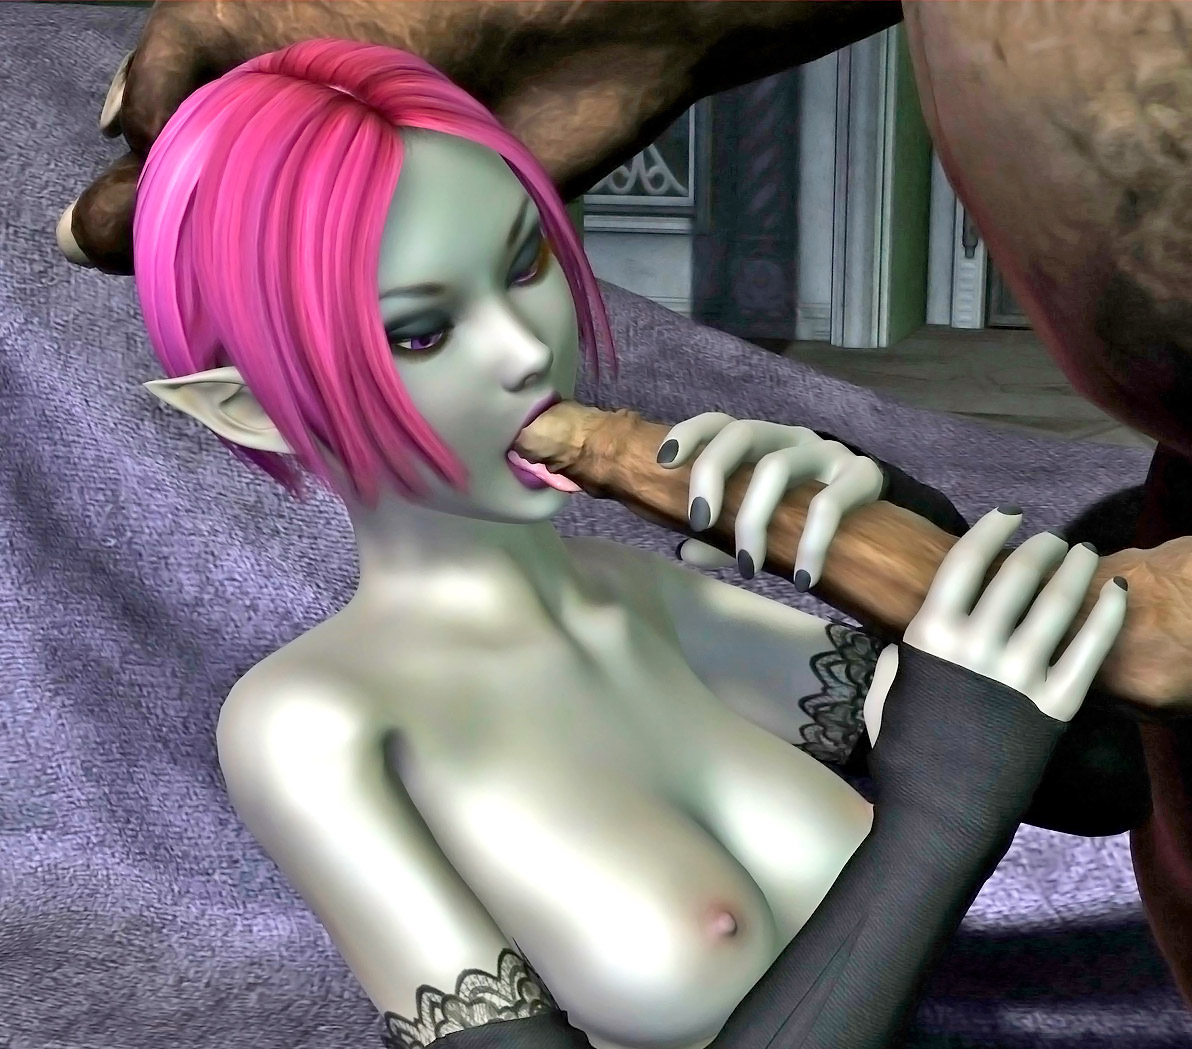 Elven porn movie adult bisexual whore